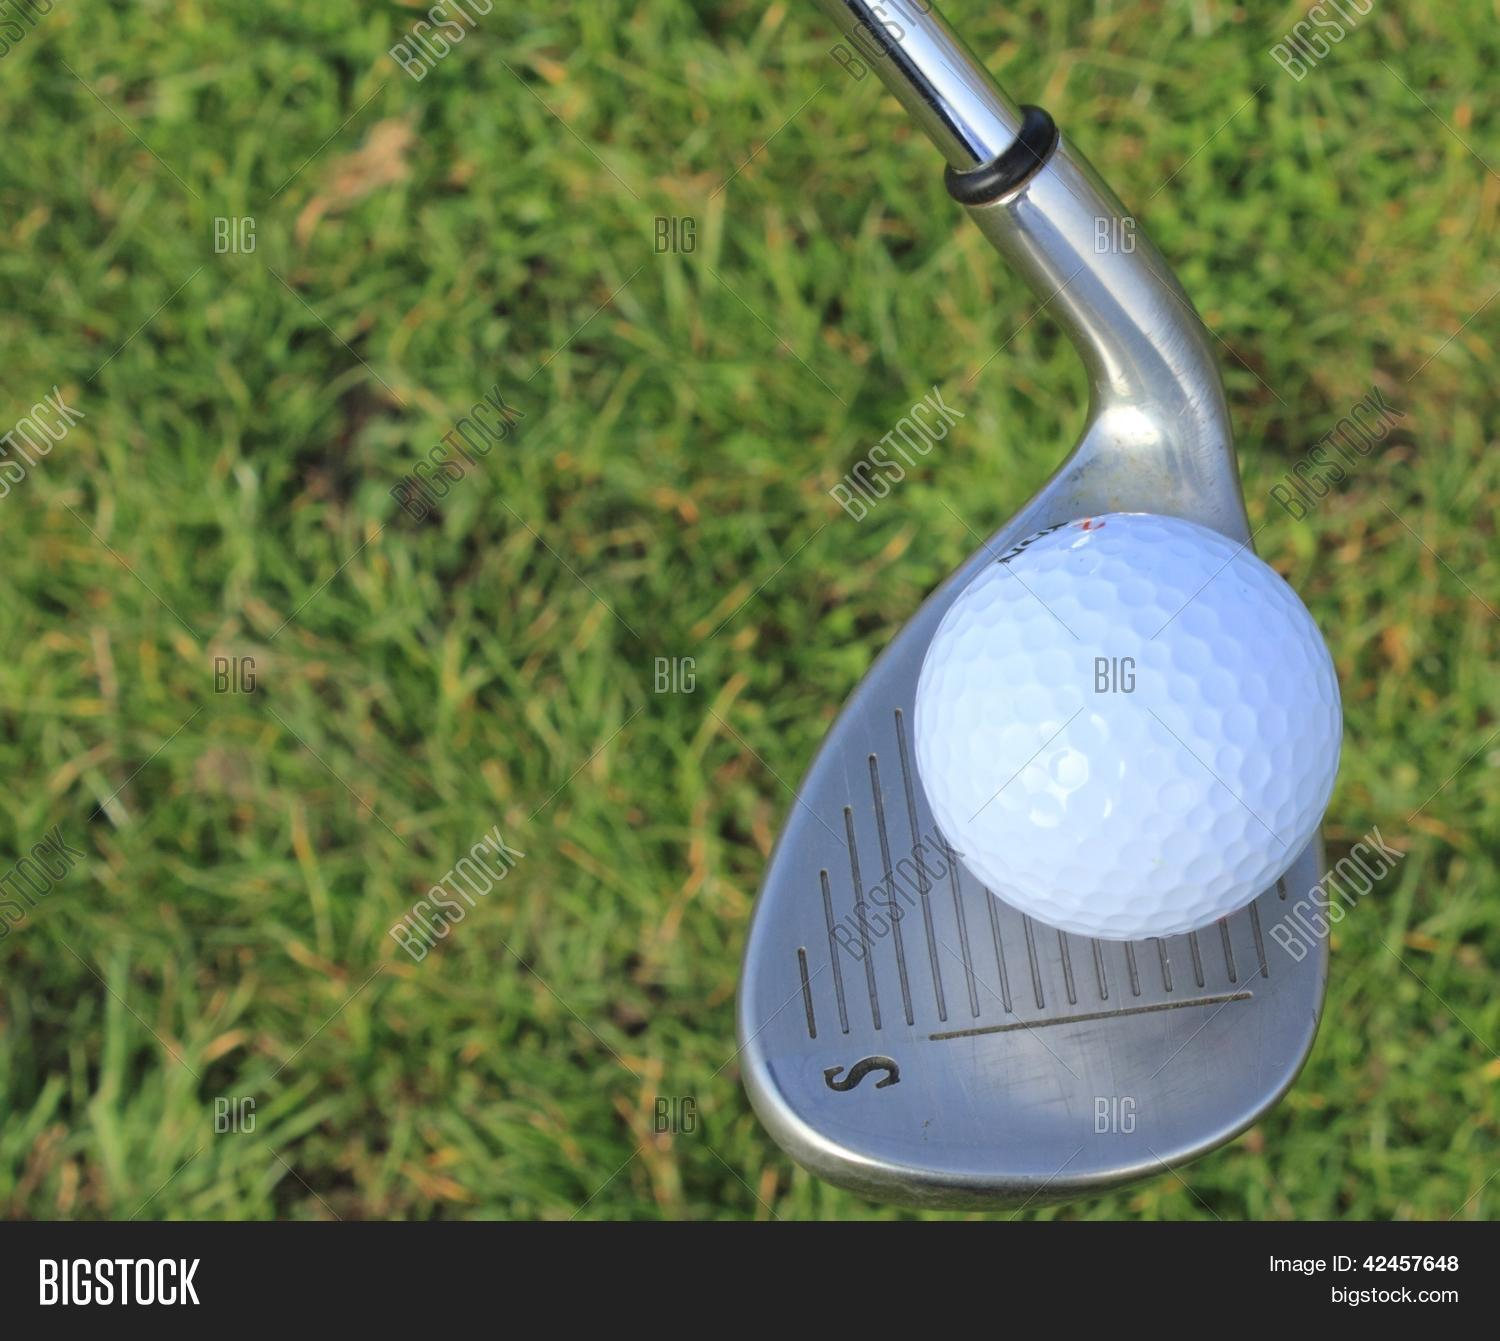 achieve,achievement,action,active,activity,aim,aiming,background,balance,ball,beautiful,begin,bright,close,club,compete,competition,competitive,concept,conceptual,country,course,cut,day,design,detail,dimples,divot,drive,driven,driver,exercise,expense,expensive,fairway,field,fore,form,four,friendly,frustrate,frustrating,frustration,fun,game,golf,golfball,golfcourse,golfer,golfing,grass,green,greenery,grooves,handicap,hard,hit,hobby,hole,holiday,invitation,invitational,lawn,leisure,life,lifestyle,links,long,natural,nature,outdoors,par,peg,pitch,pitching,play,player,playing,practice,ready,recreation,relax,relaxation,relaxed,resort,retire,retirement,rough,round,sandwedge,scenery,scenic,score,scorecard,senior,shadow,skill,speed,sports,start,success,successful,summer,sweet,swing,tee,vacation,walk,white